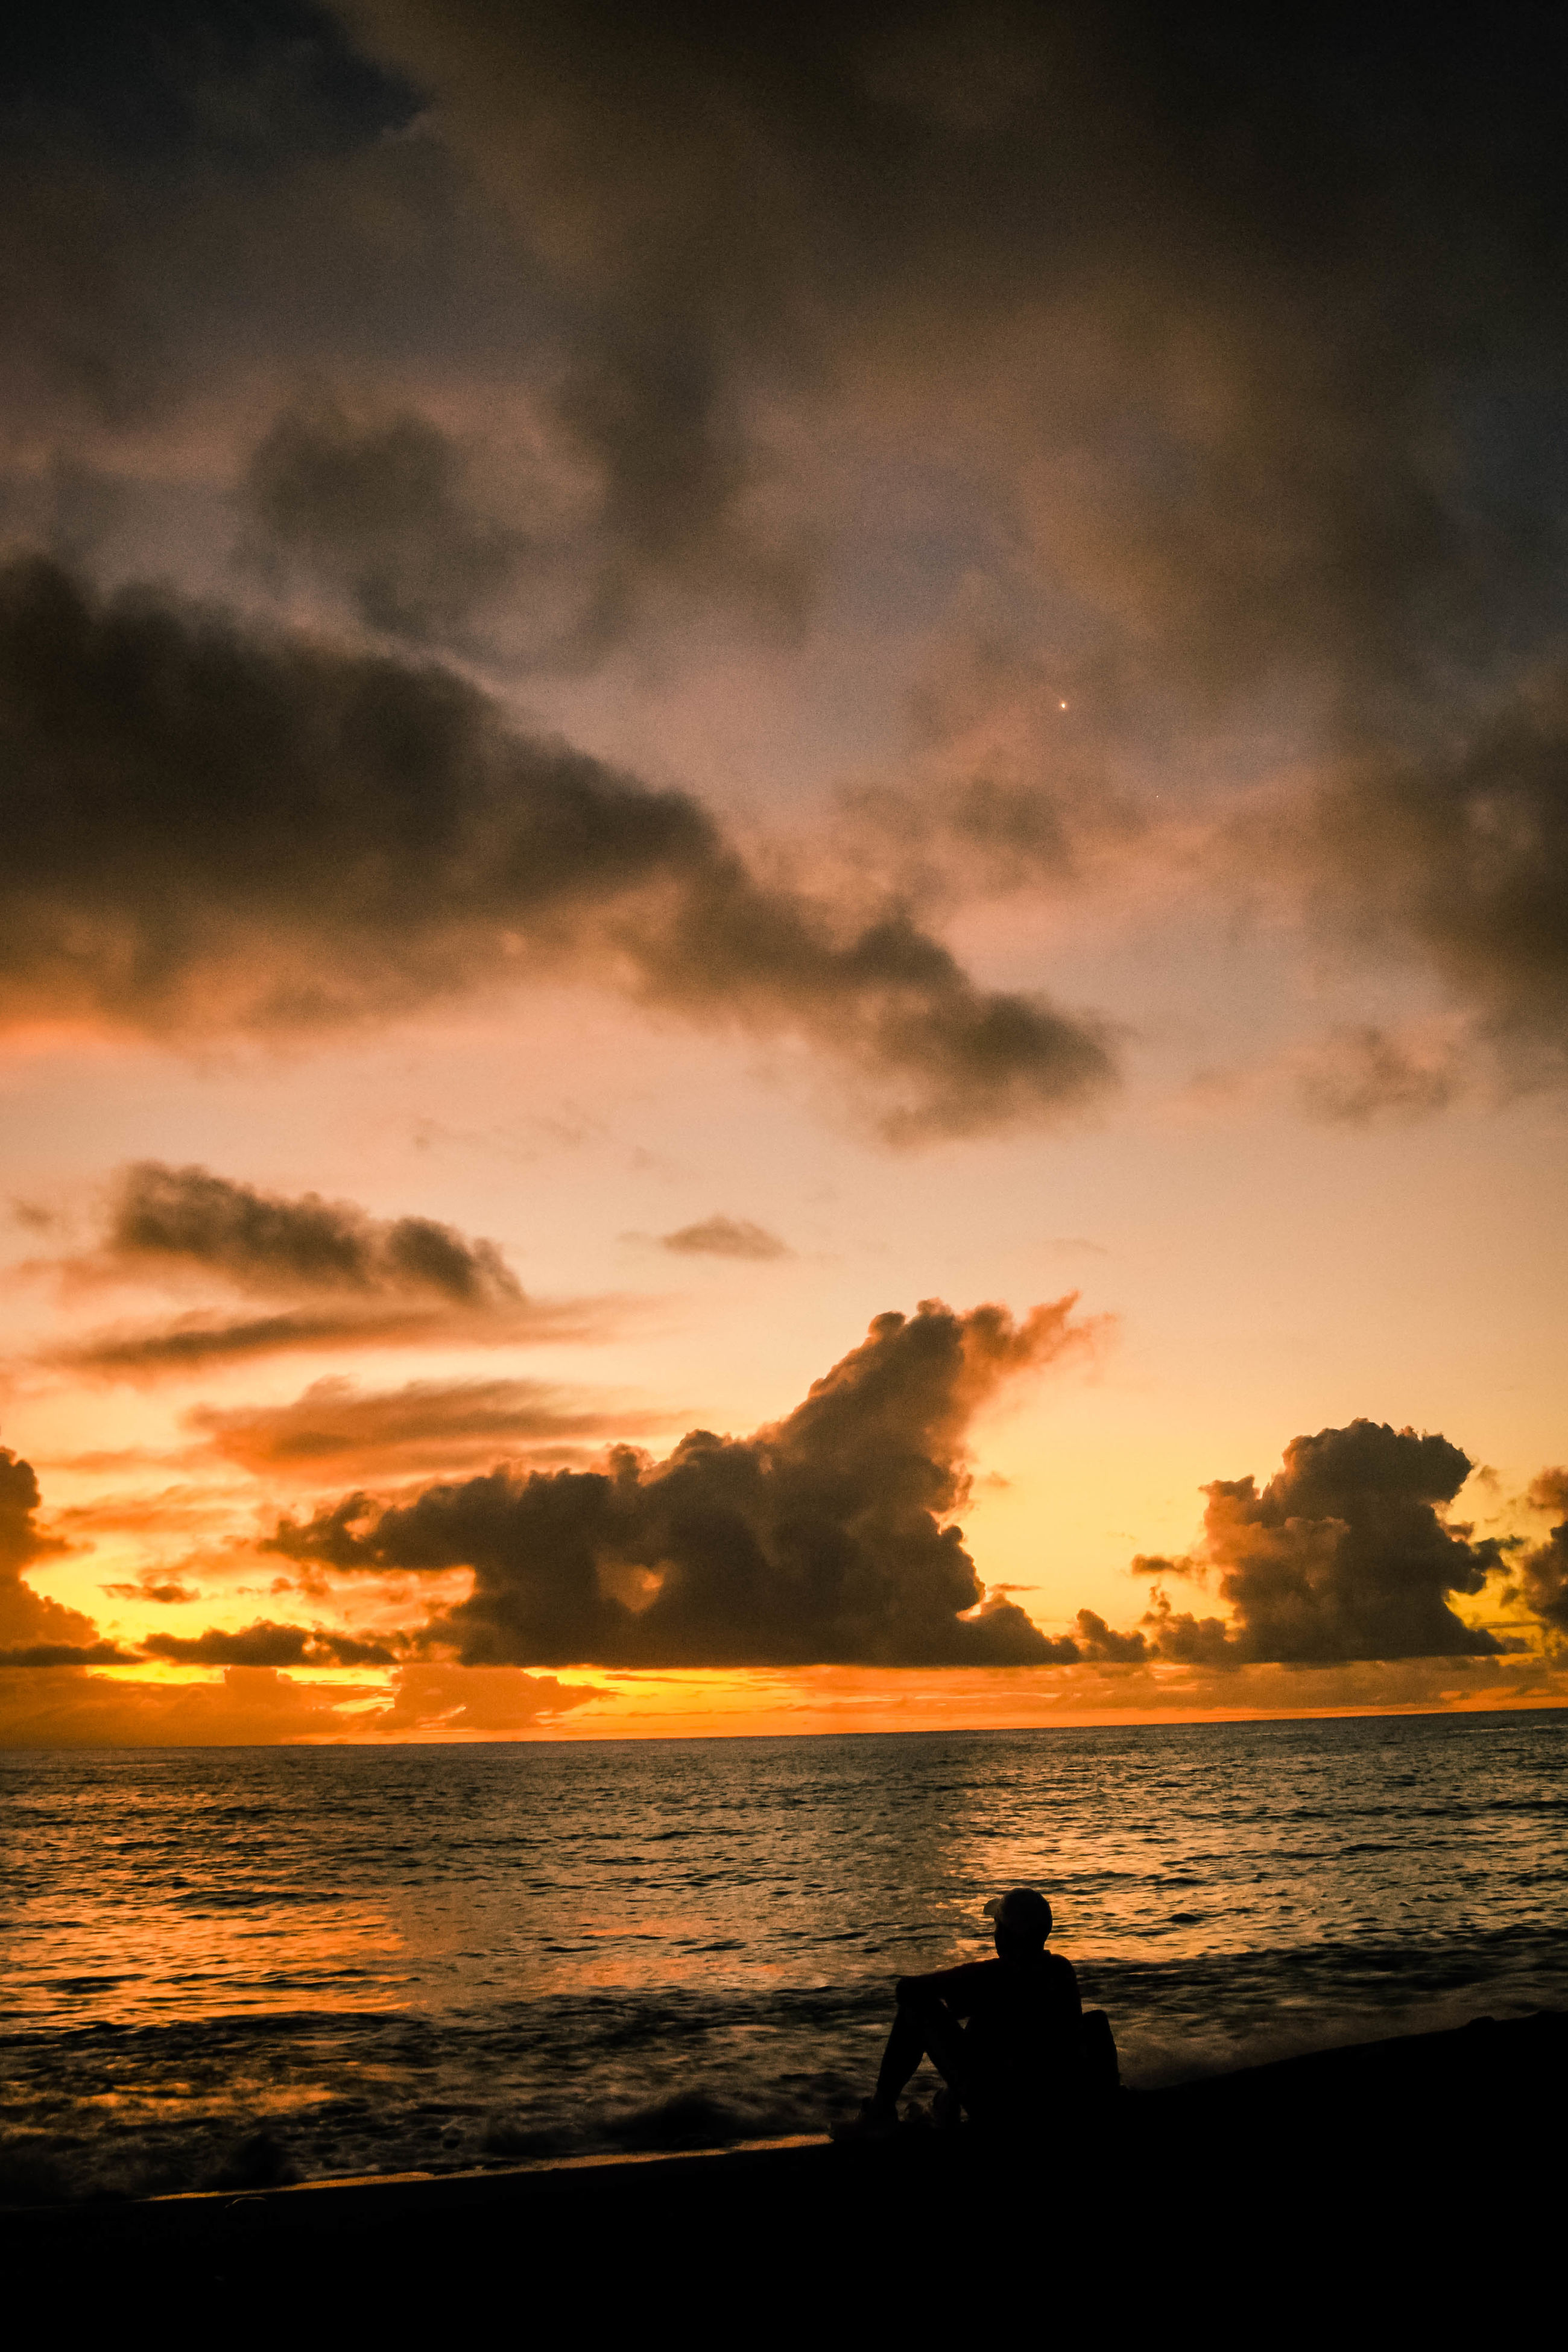 sunset, silhouette, beauty in nature, sky, nature, sea, dramatic sky, cloud - sky, outdoors, scenics, water, no people